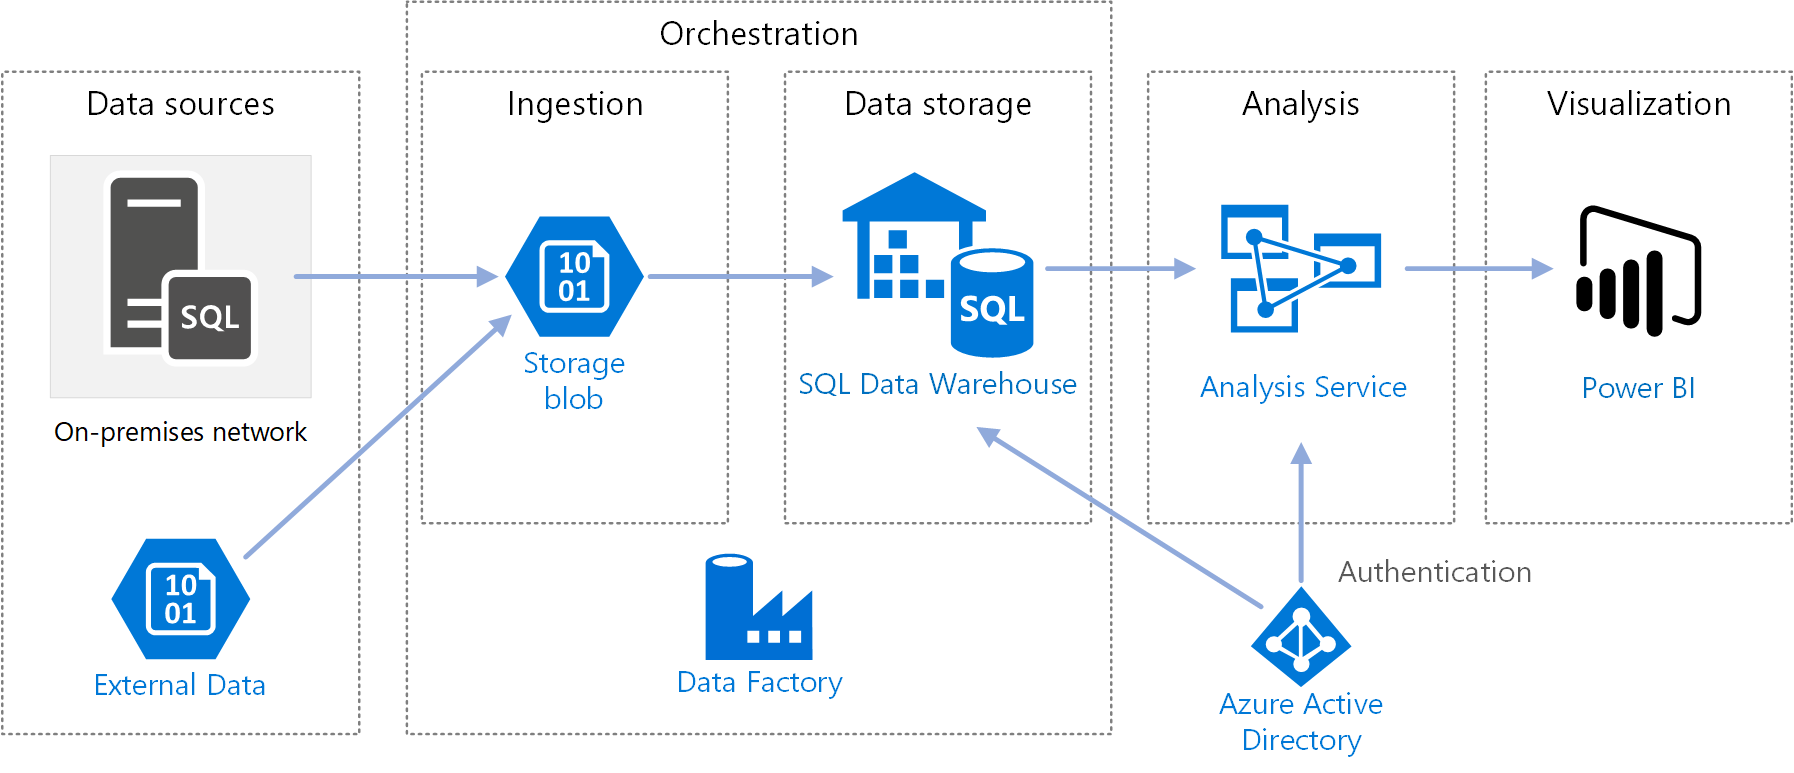 Automated Enterprise Business Intelligence Bi Azure Reference. Itecture Diagram For Automated Enterprise Bi With Sql Data Warehouse And Azure Factory. Wiring. Cms Data Warehouse Architecture Diagram At Scoala.co